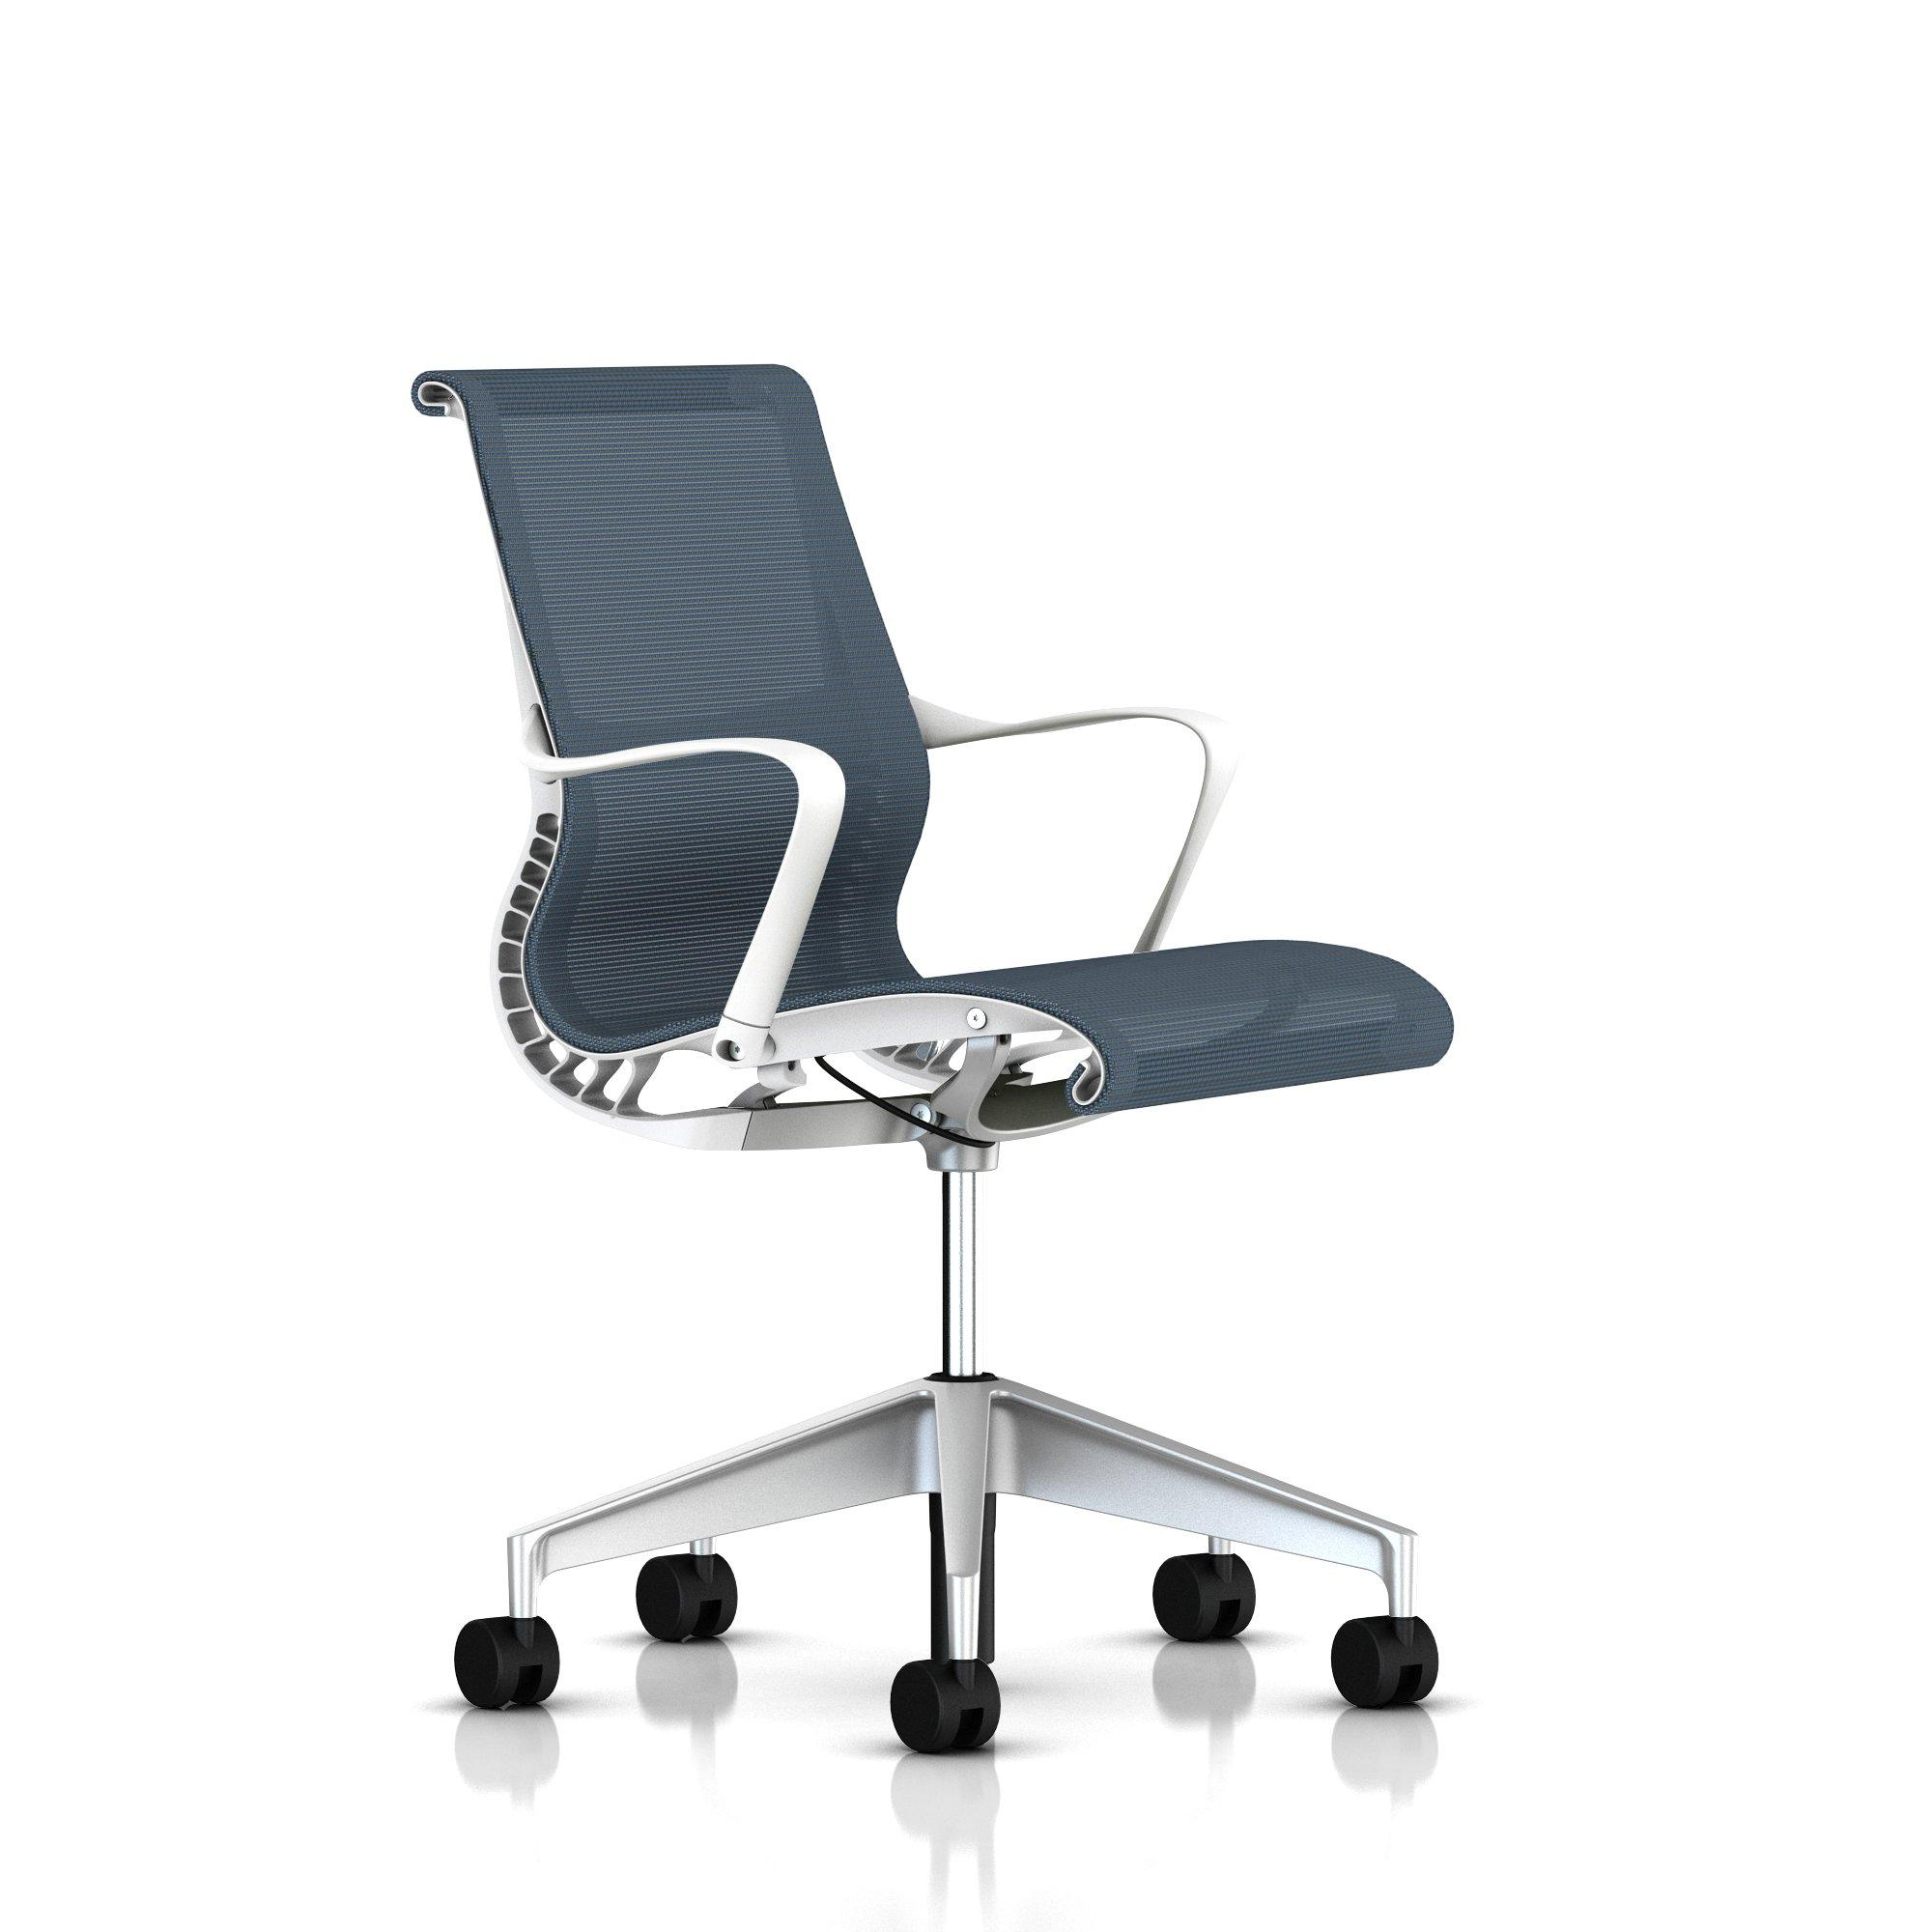 Studio White Frame - Silver alloy Base - Ribbon Arms - Hard Floor or Carpet Casters - None - Berry Blue Lyris 2 Fabric Seat and Back